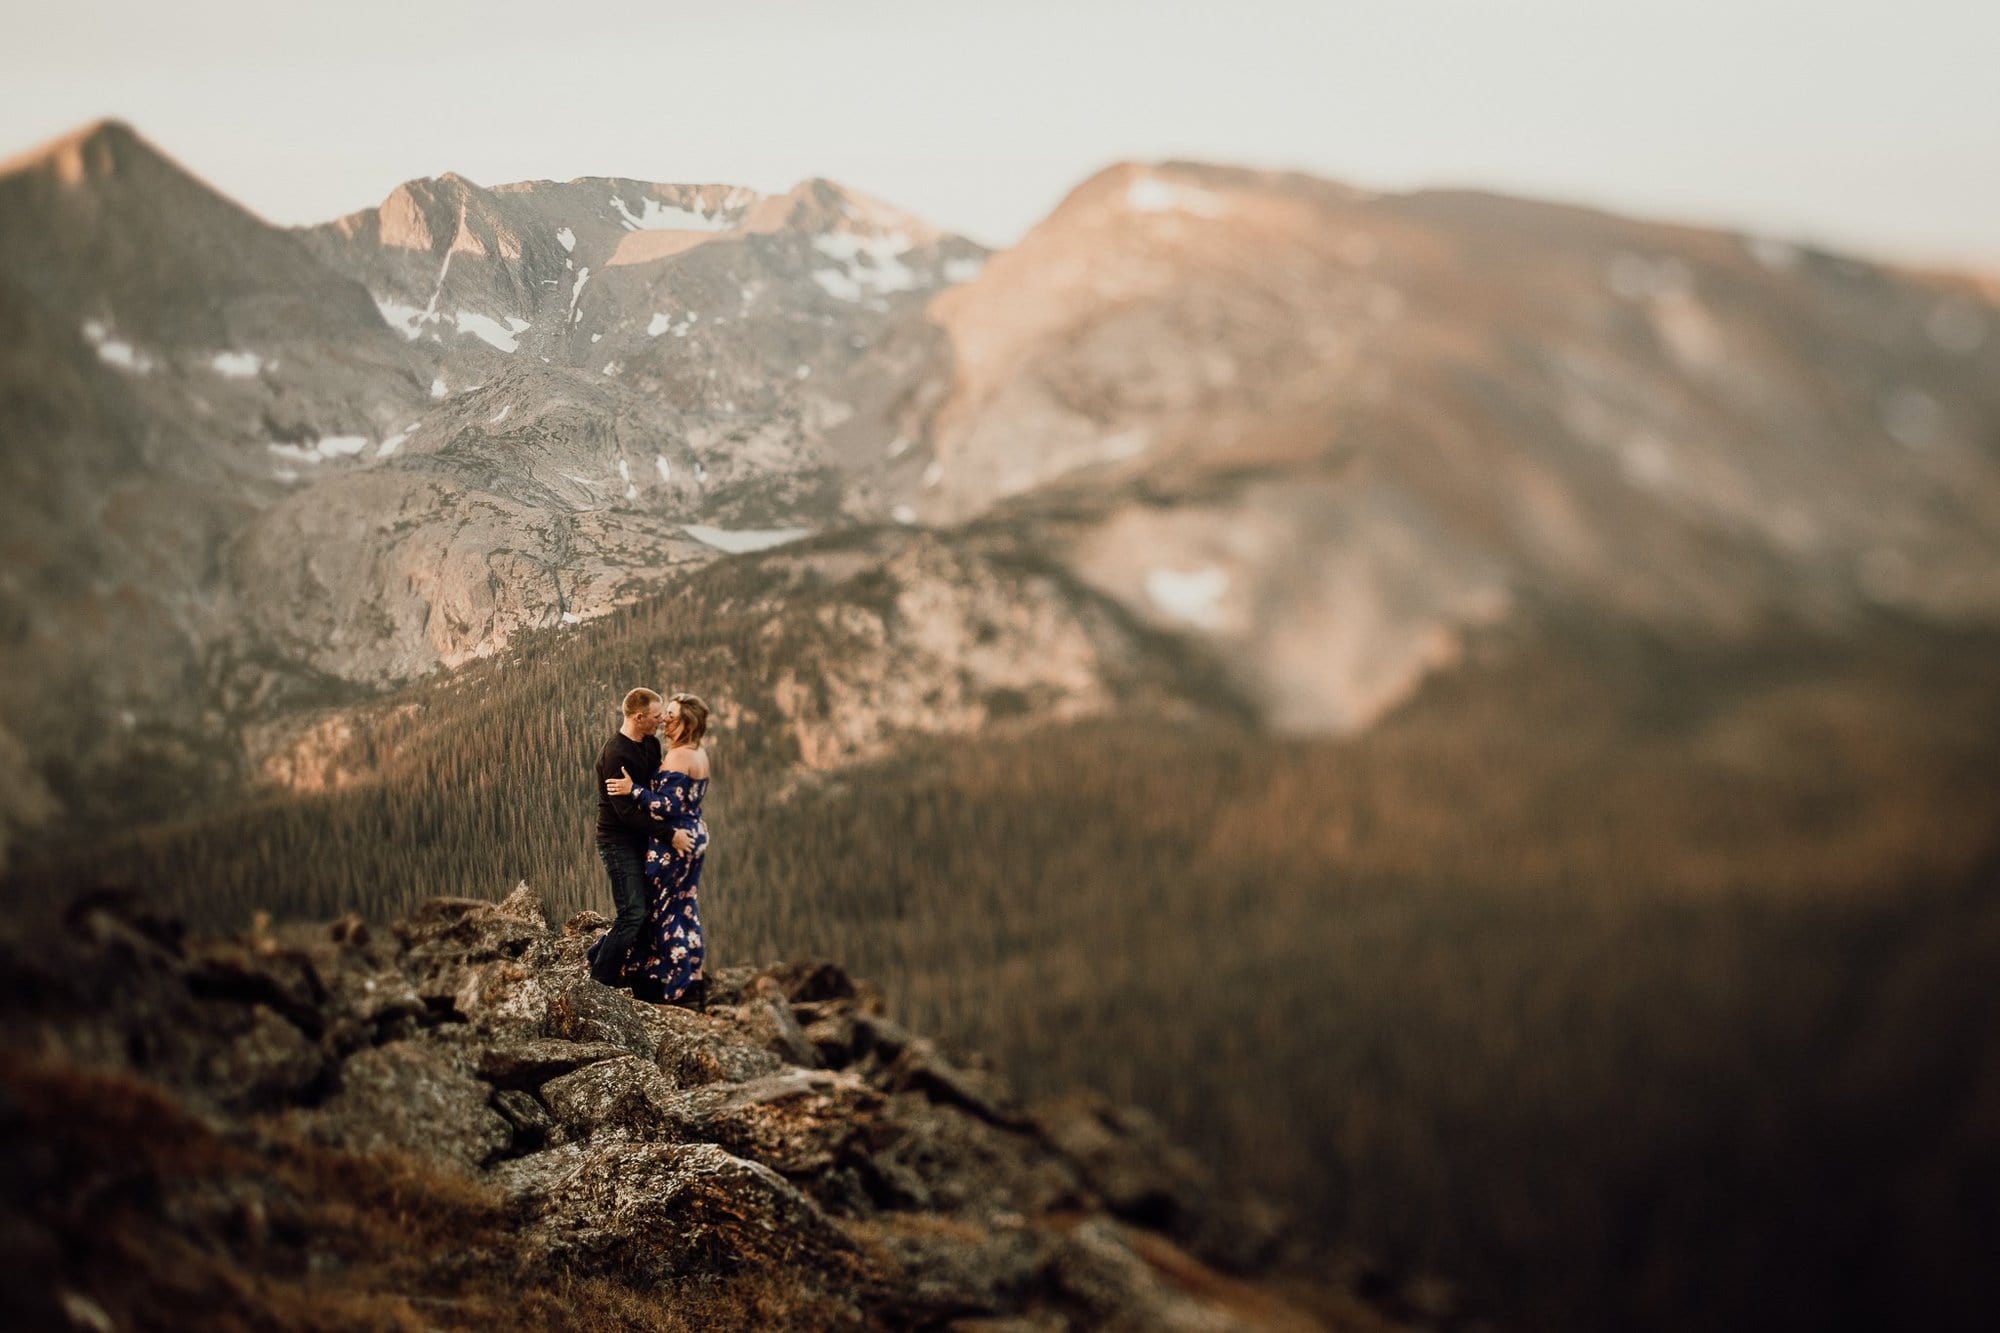 ESTES PARK ENGAGEMENT PHOTOGRAPHY |TRAIL RIDGE ROAD ENGAGEMENT | JUSTYNA E BUTLER PHOTOGRAPHY | ROCKY MOUNTAIN NATIONAL PARK ENGAGEMENT |COLORADO MOUNTAIN ENGAGEMENT PHOTOGRAPHER